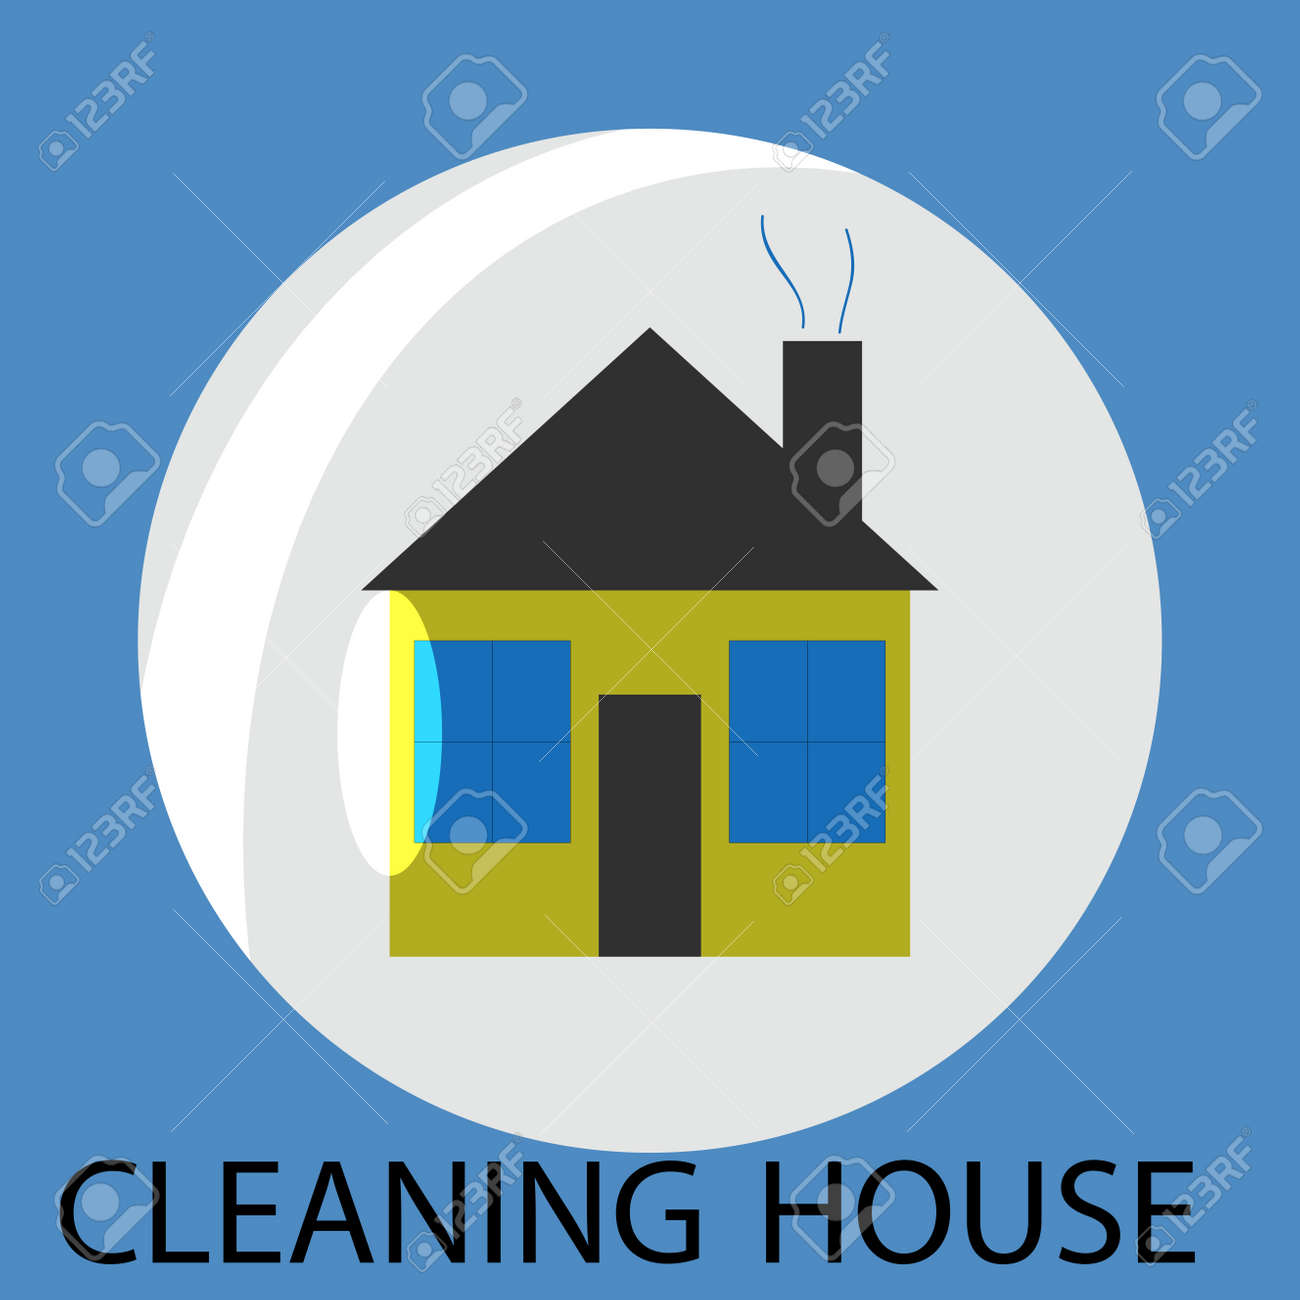 cleaning house icon cleaning and cleaning service clean house house cleaning service